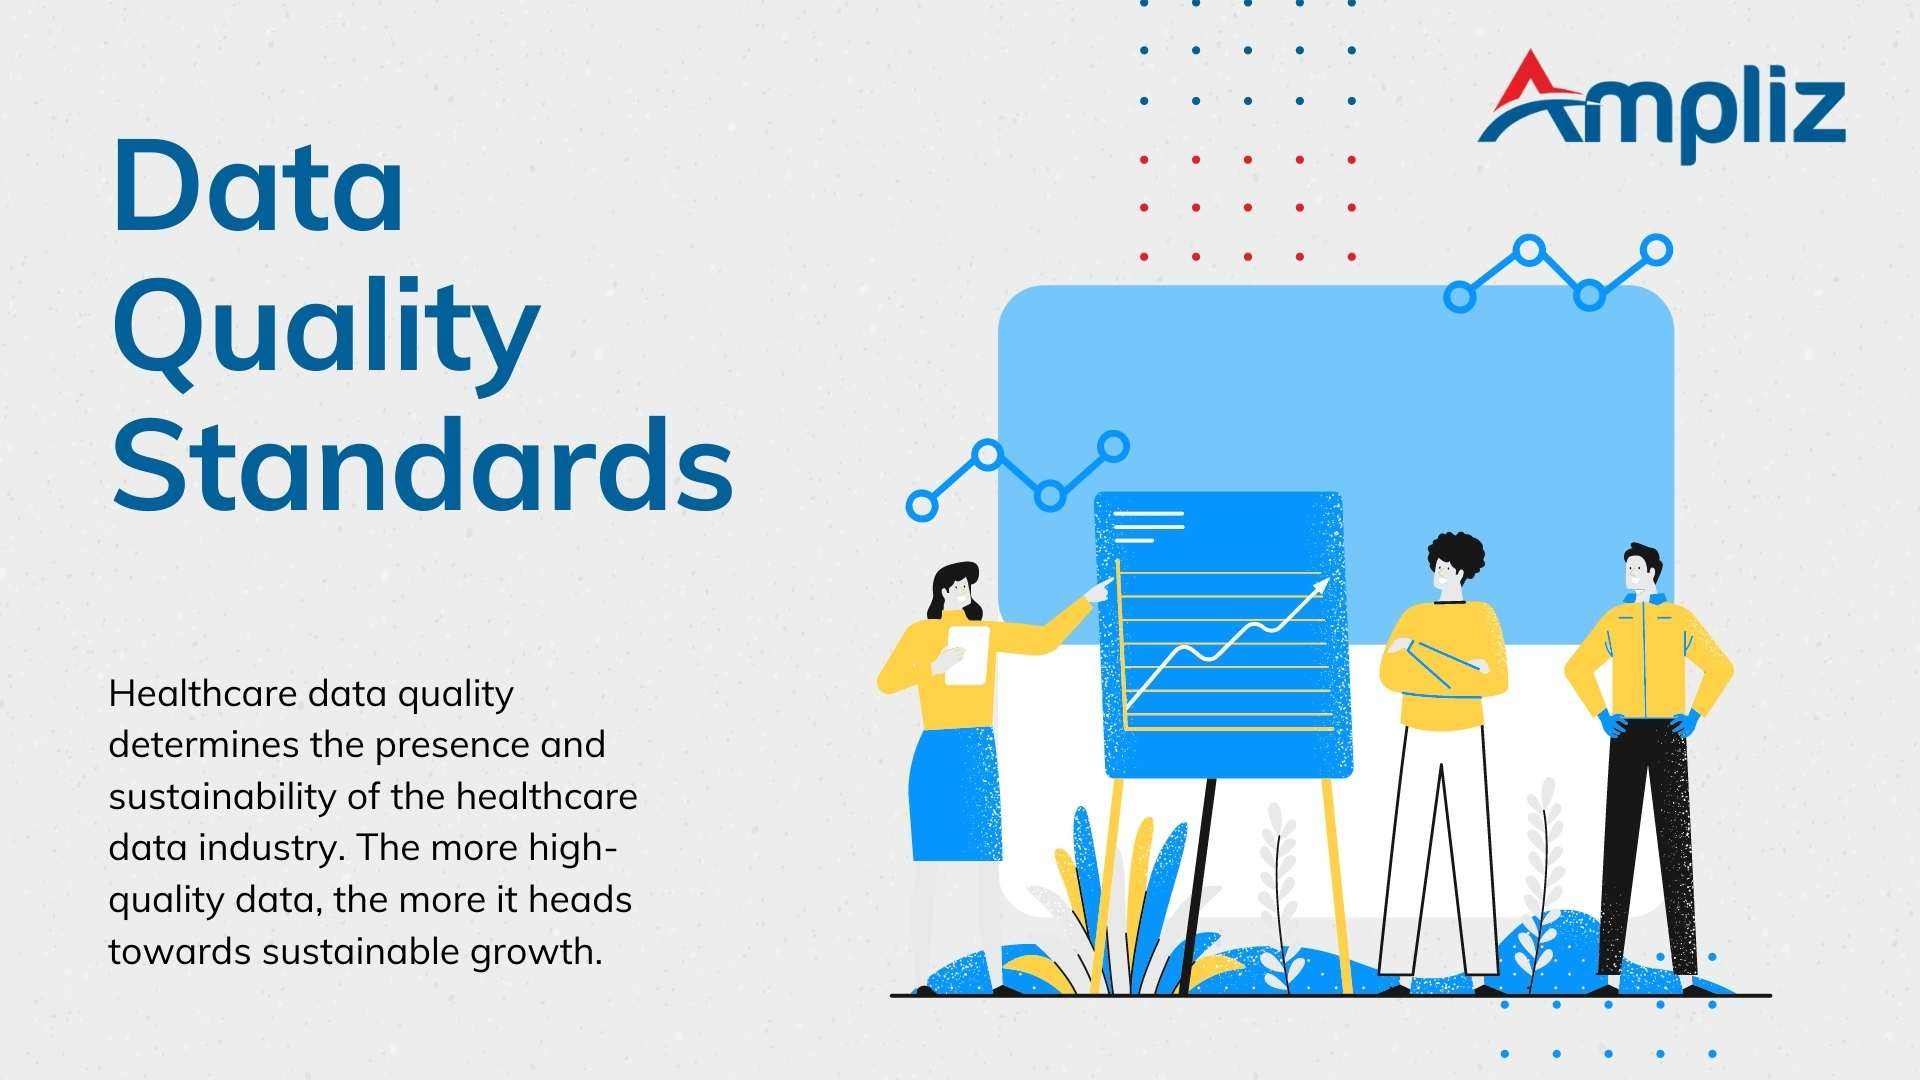 Healthcare data quality